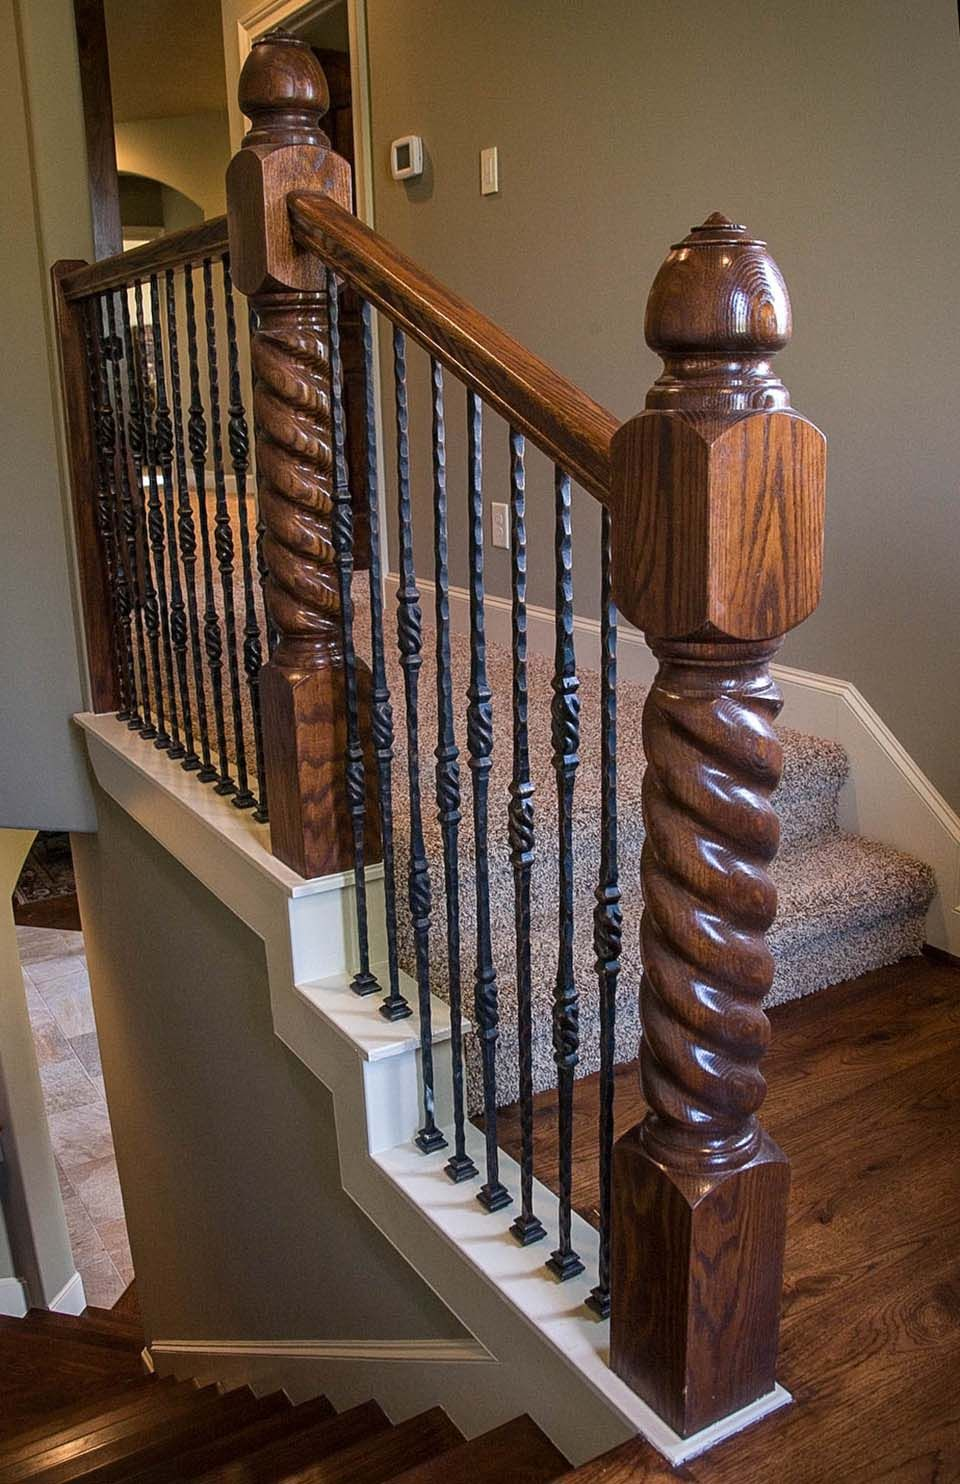 Rustic Staircase Rustic Stairs Wrought Iron Staircase Rustic